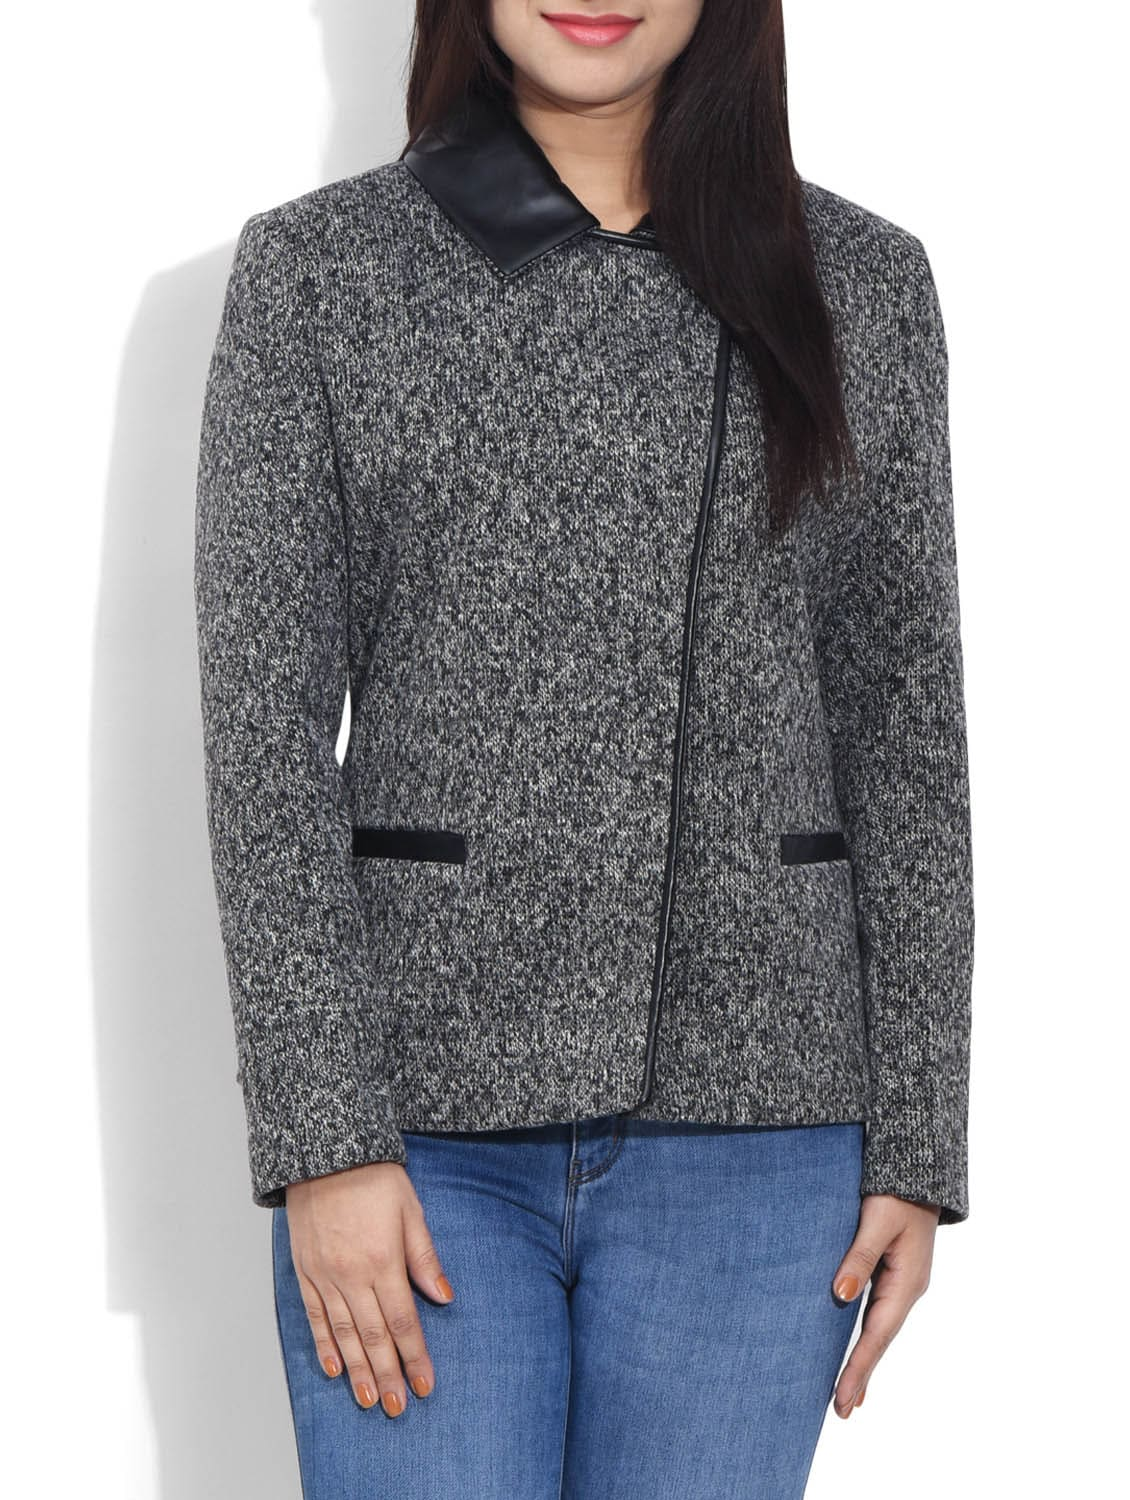 Grey Woollen Printed Coat - By